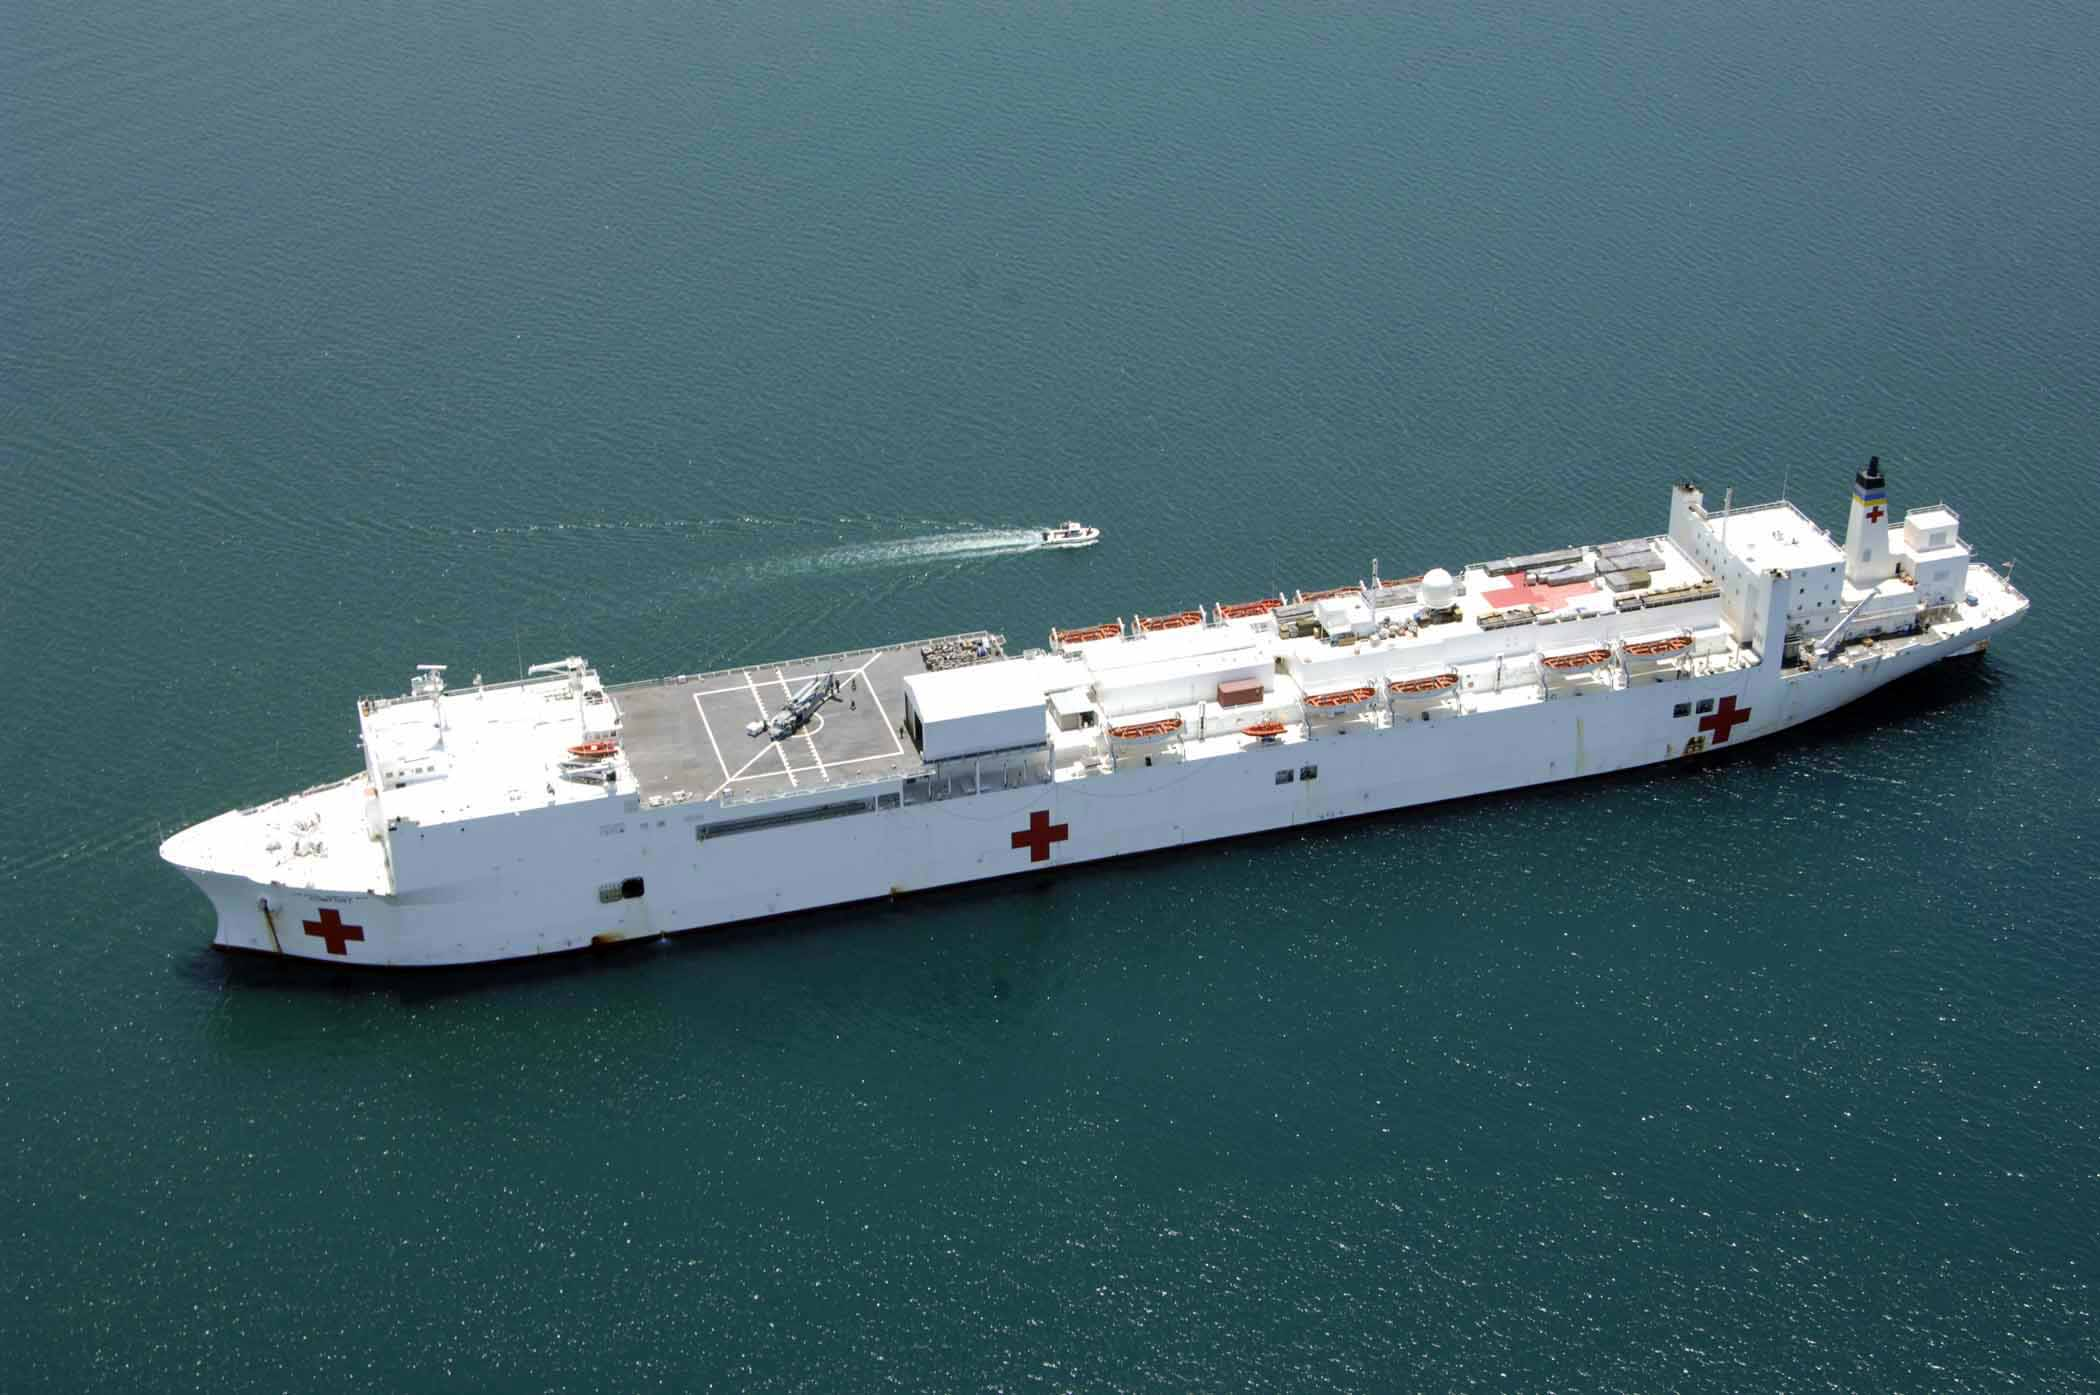 hospital ship wikipedia empire today buy 1 get 1 free sale 1 shipping #15